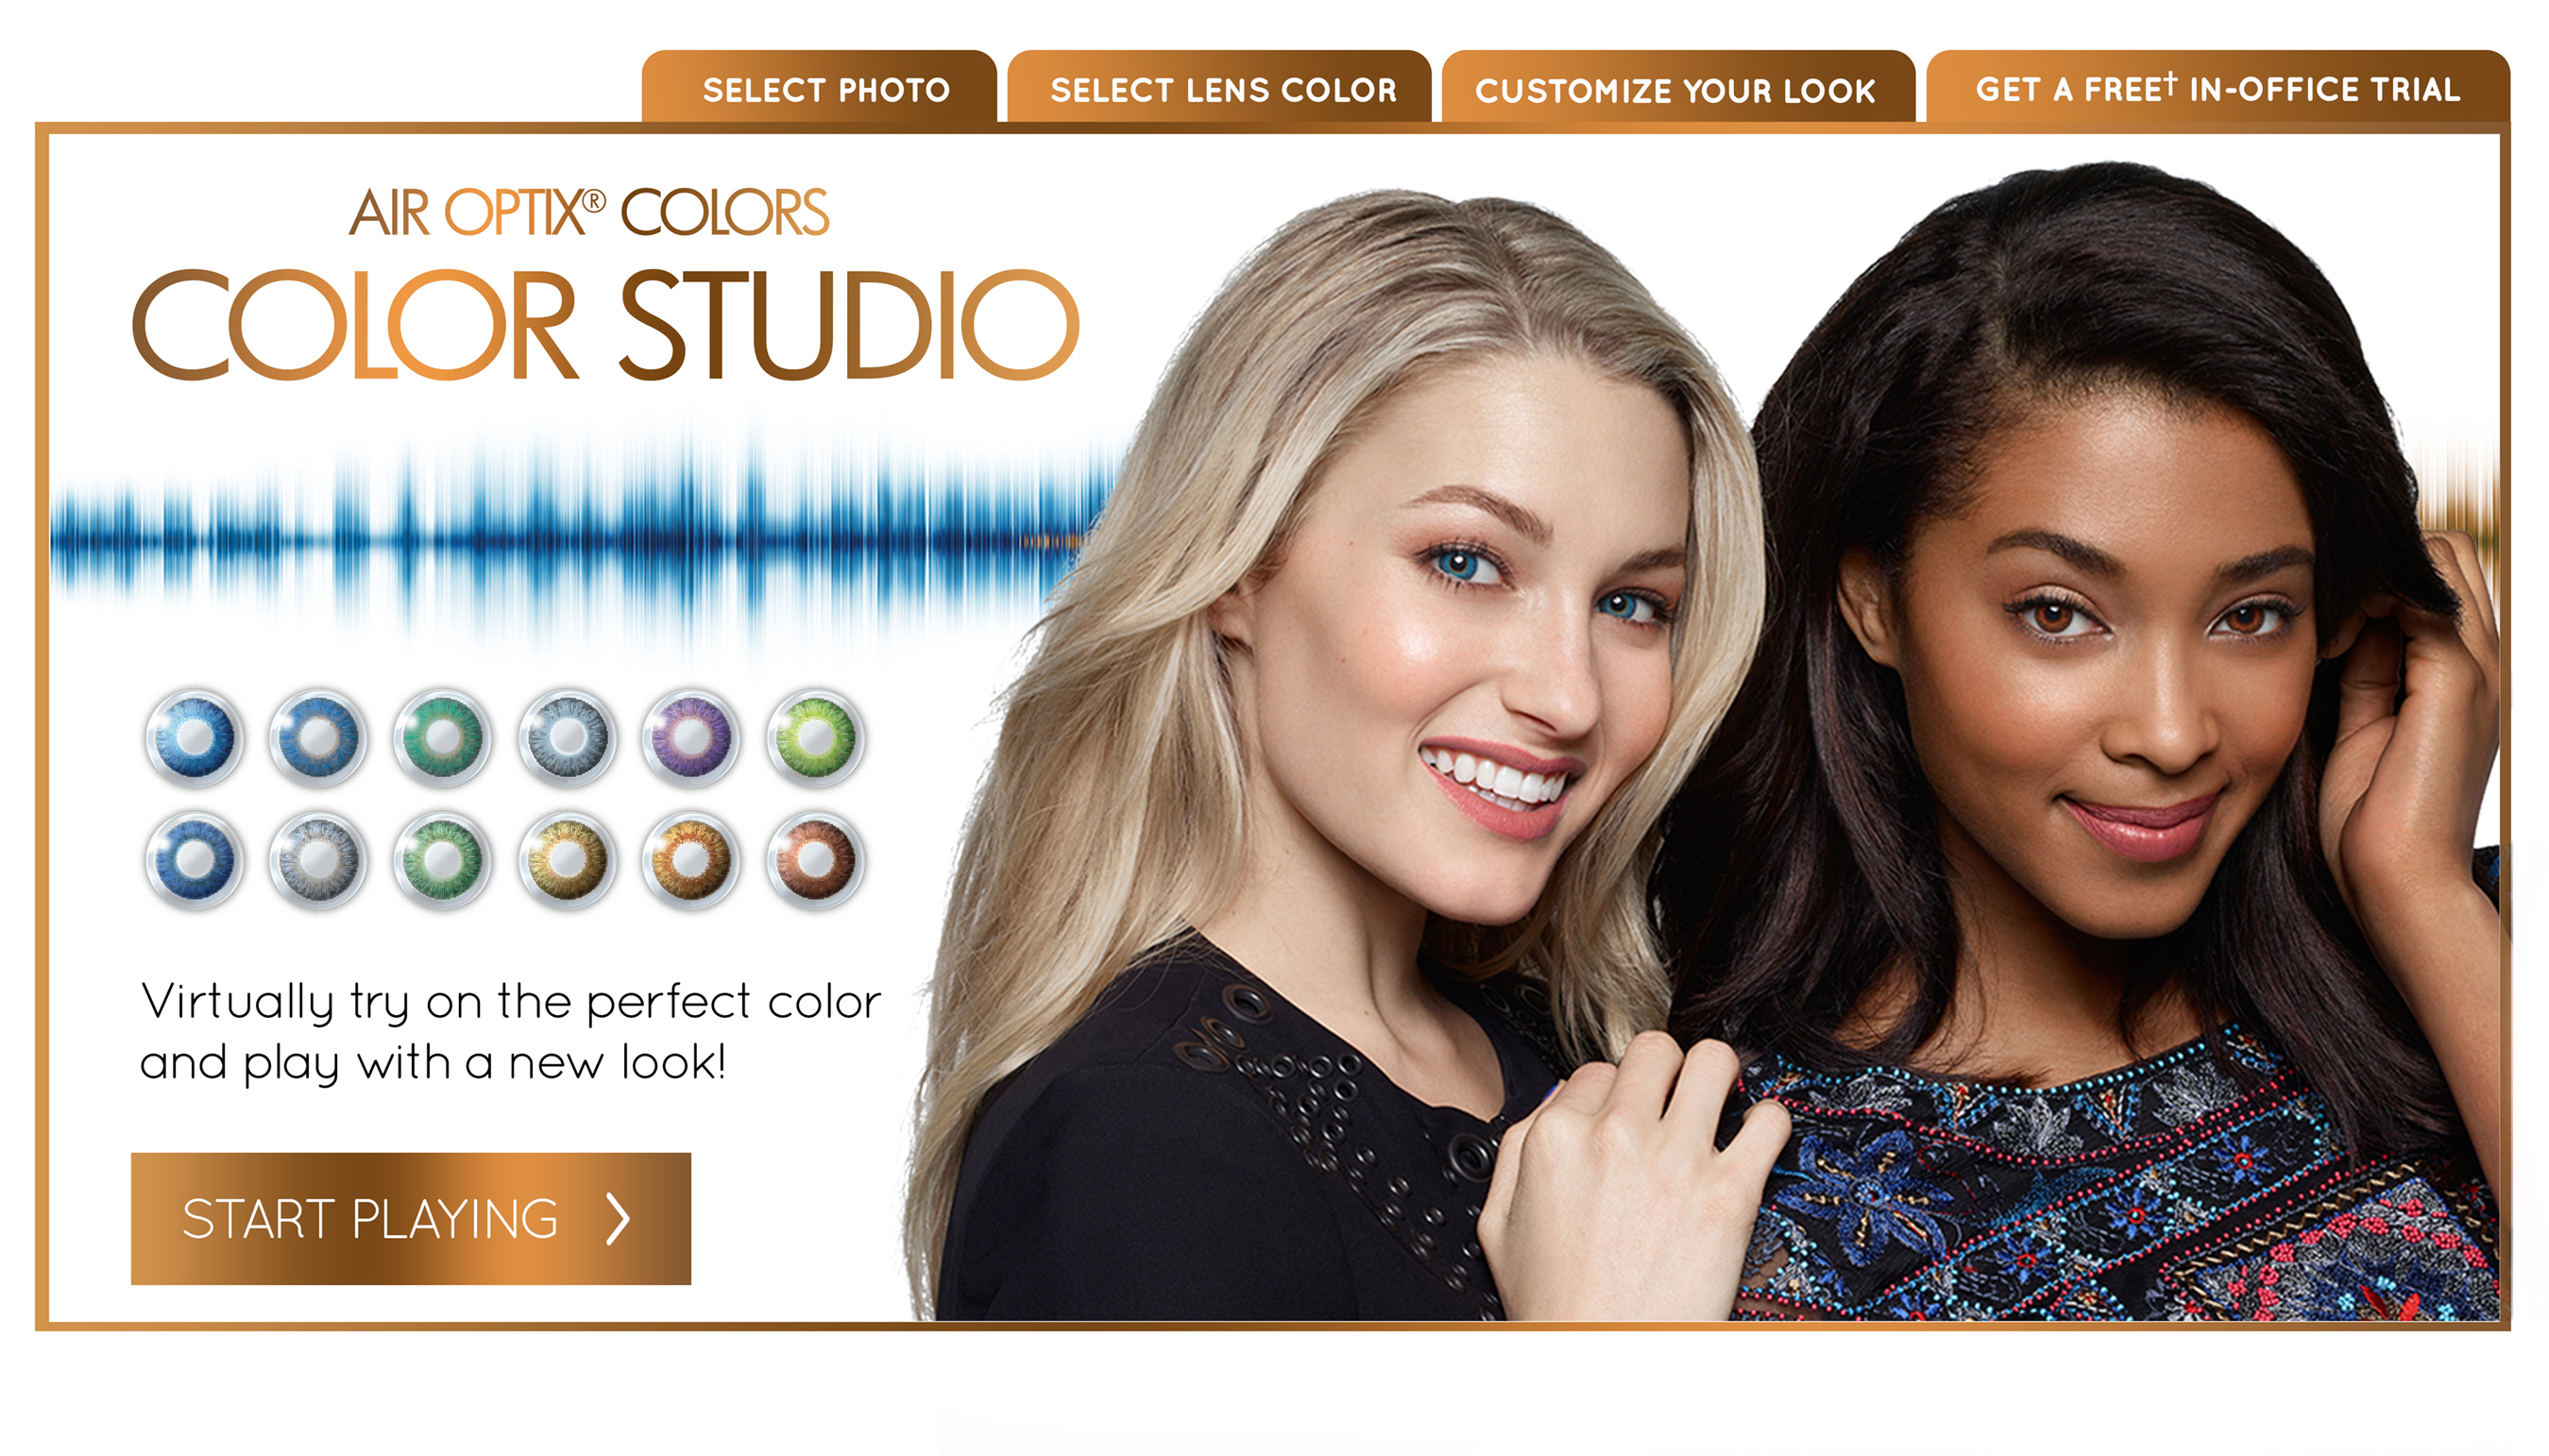 Contestants will be able to enter the AIR OPTIX® COLORS contact lenses sweepstakes by taking photos of themselves wearing the lenses or by virtually trying them on at the AIR OPTIX® COLORS Color Studio https://www.airoptix.com/colors/color-studio.shtml